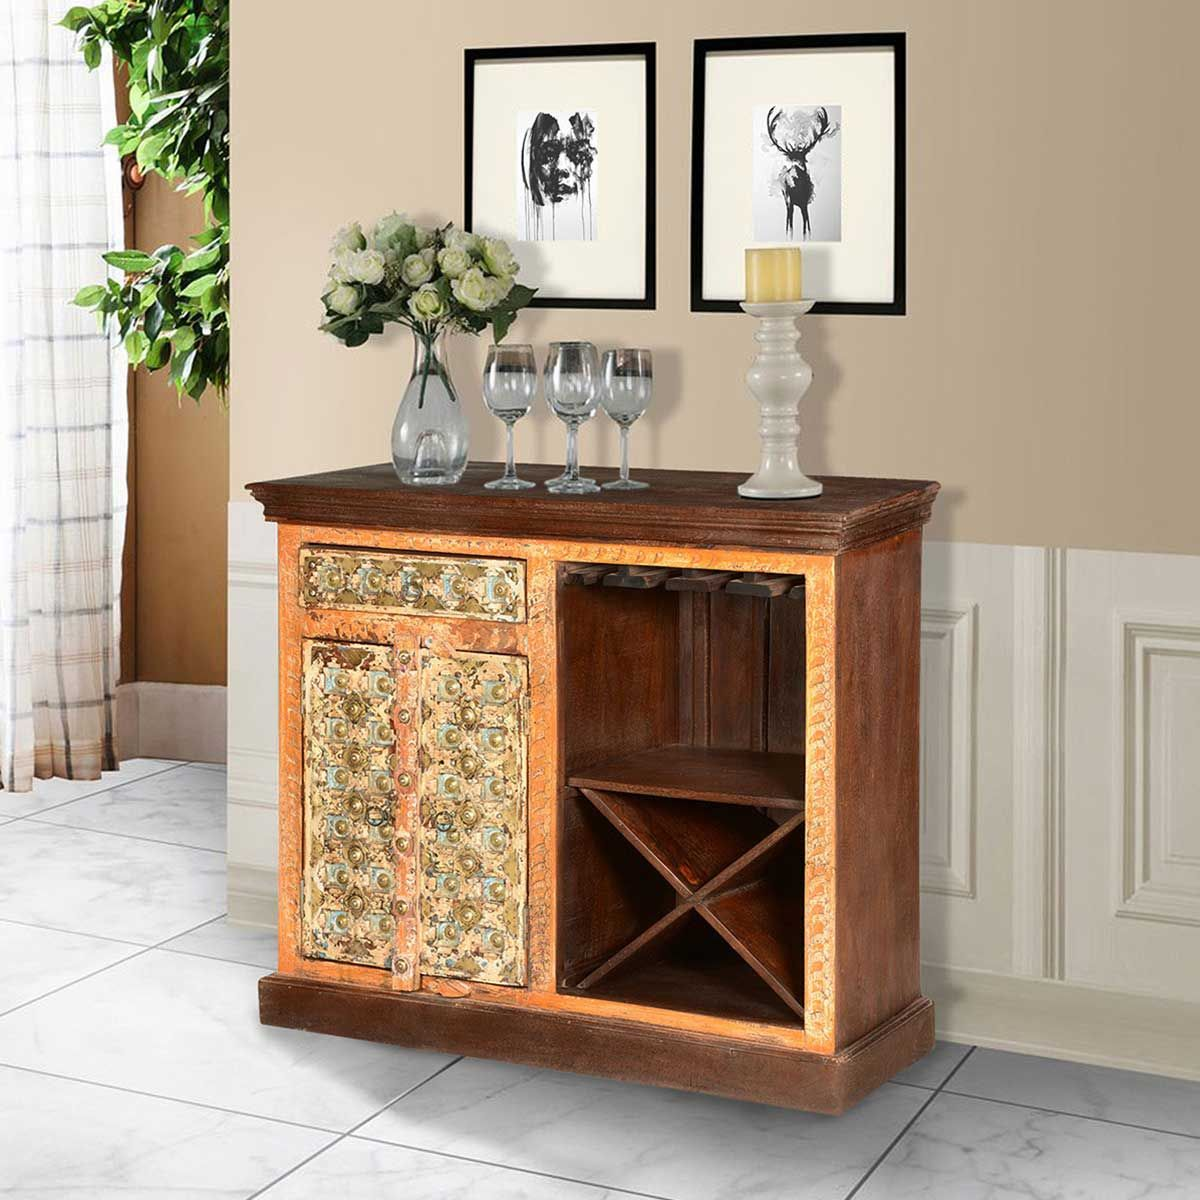 Sierra living concepts golden gothic mango wood wine rack bar cabinet bars bar stools wine racks cabinets art home from the sierra living